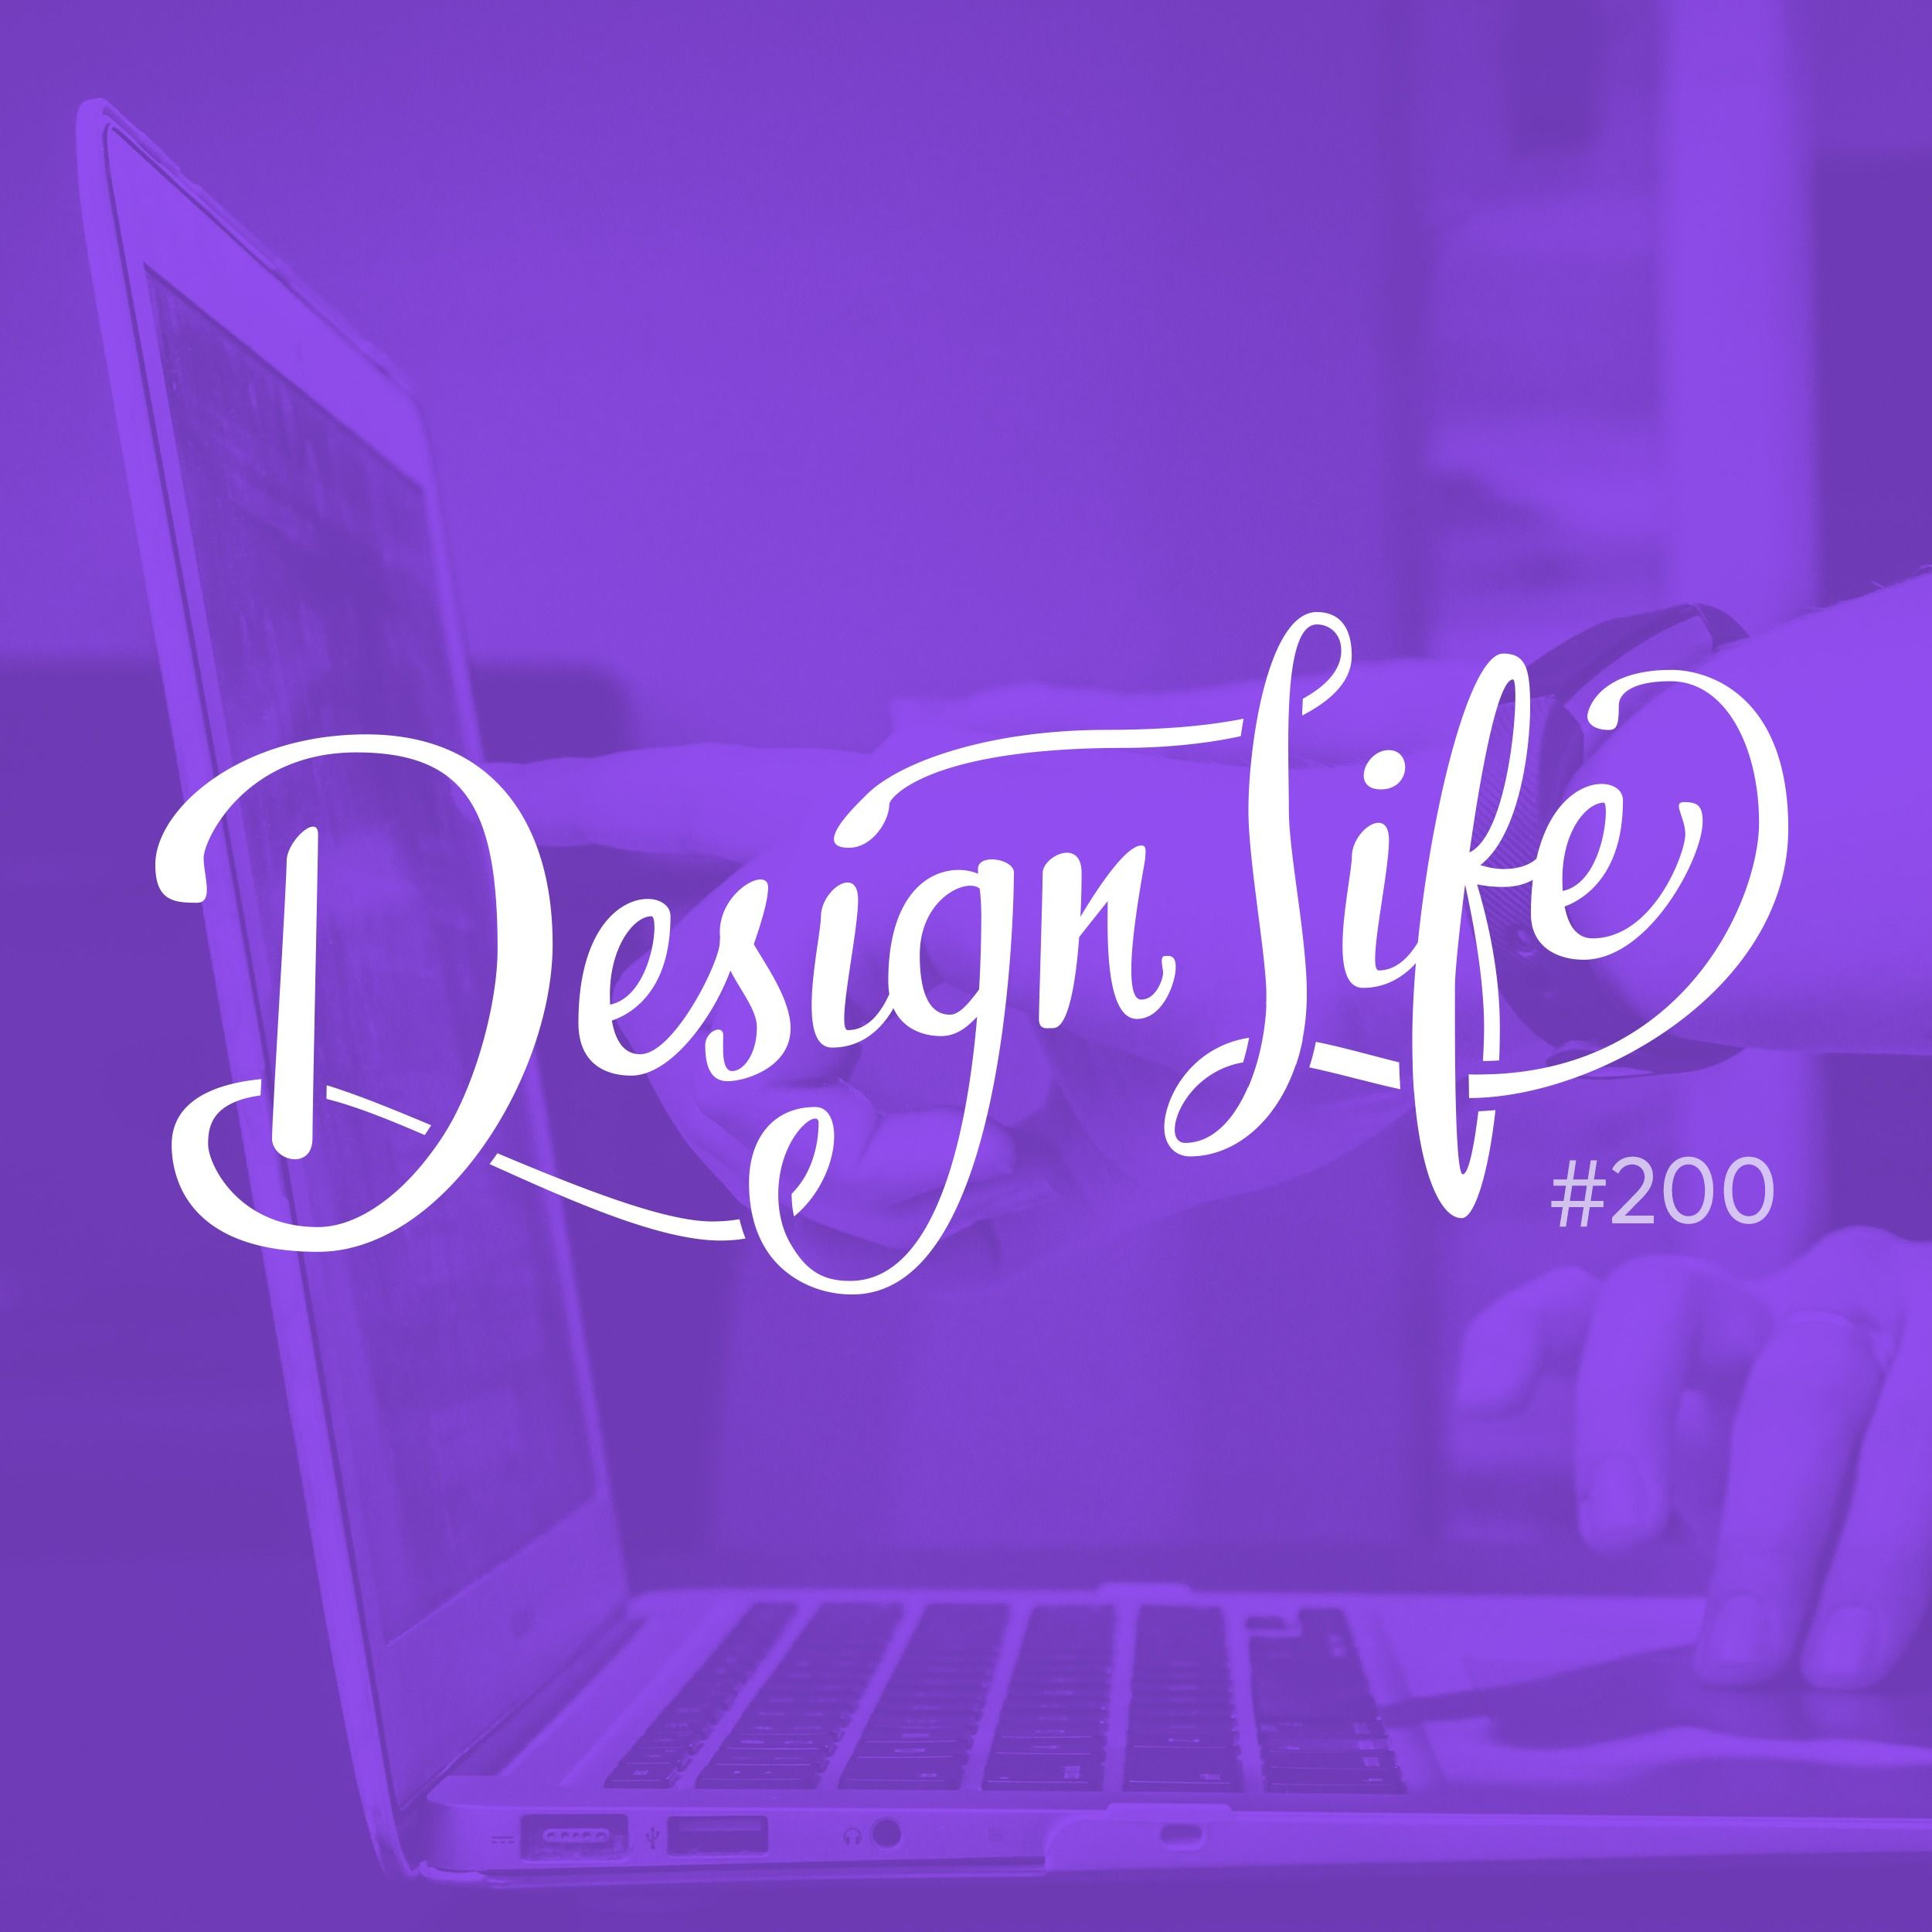 200: Does using design freebies make you less of a designer?